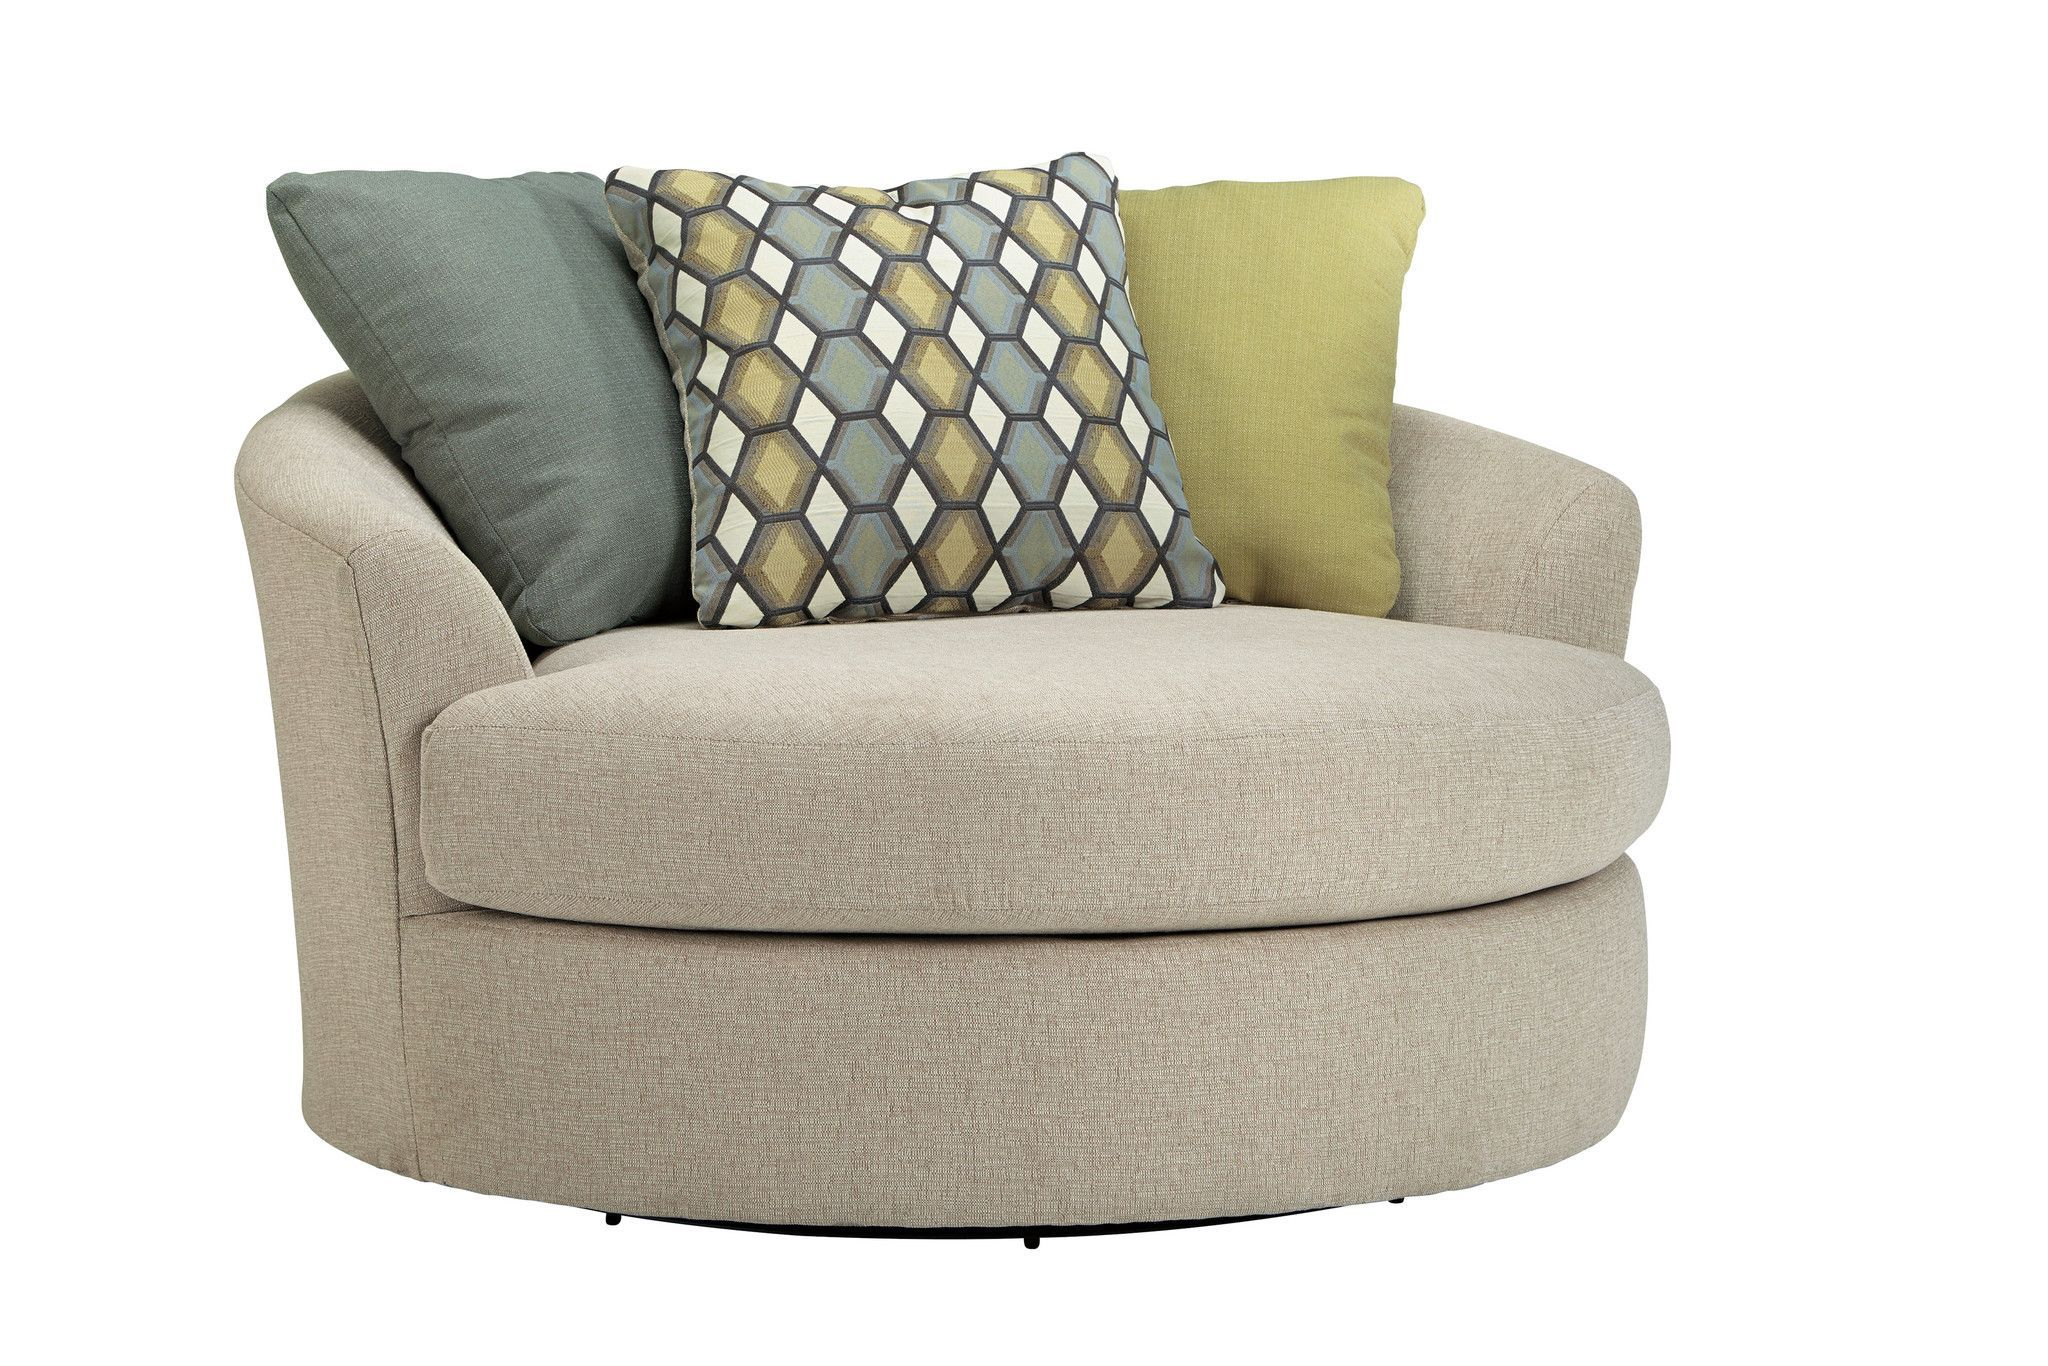 Casheral Oversized Swivel Chair  Swivel barrel chair, Accent